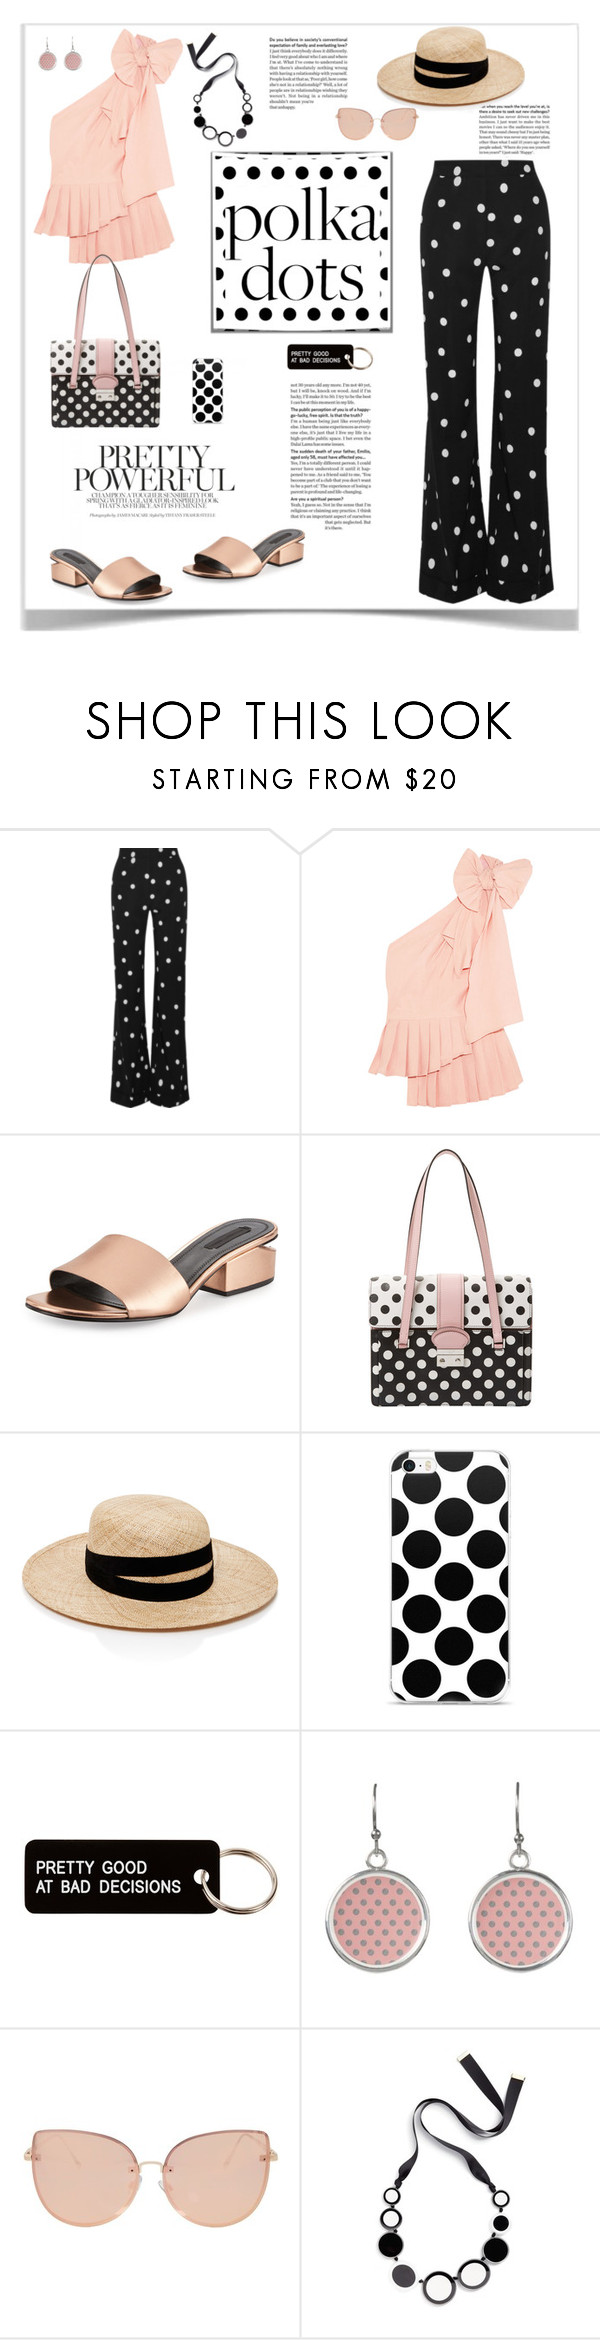 """So Dotty: Polka Dots Style"" by ellie366 ❤ liked on Polyvore featuring Monse, Sea, New York, Alexander Wang, RED Valentino, Janessa Leone, Various Projects, Topshop, Kate Spade, PolkaDots and rosegold"